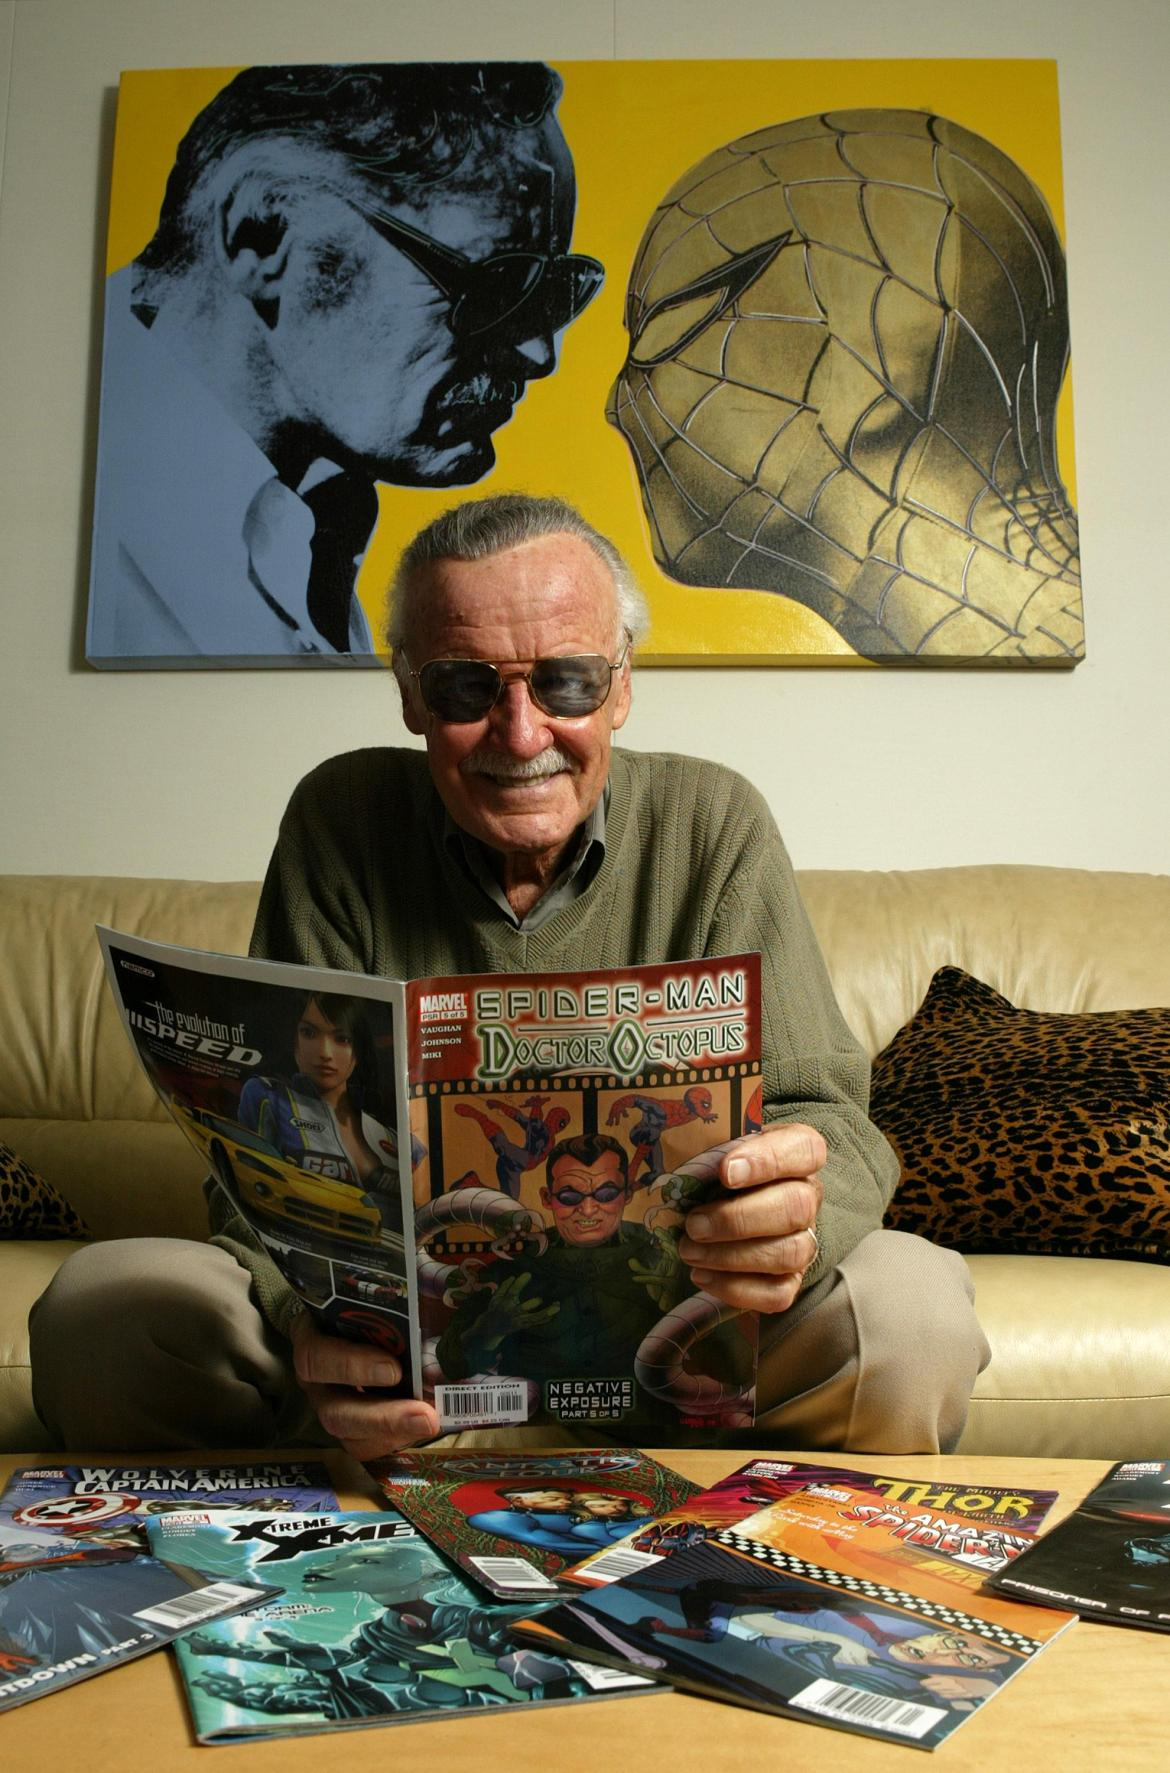 Stan Lee's lawyer denied the allegations in a statement